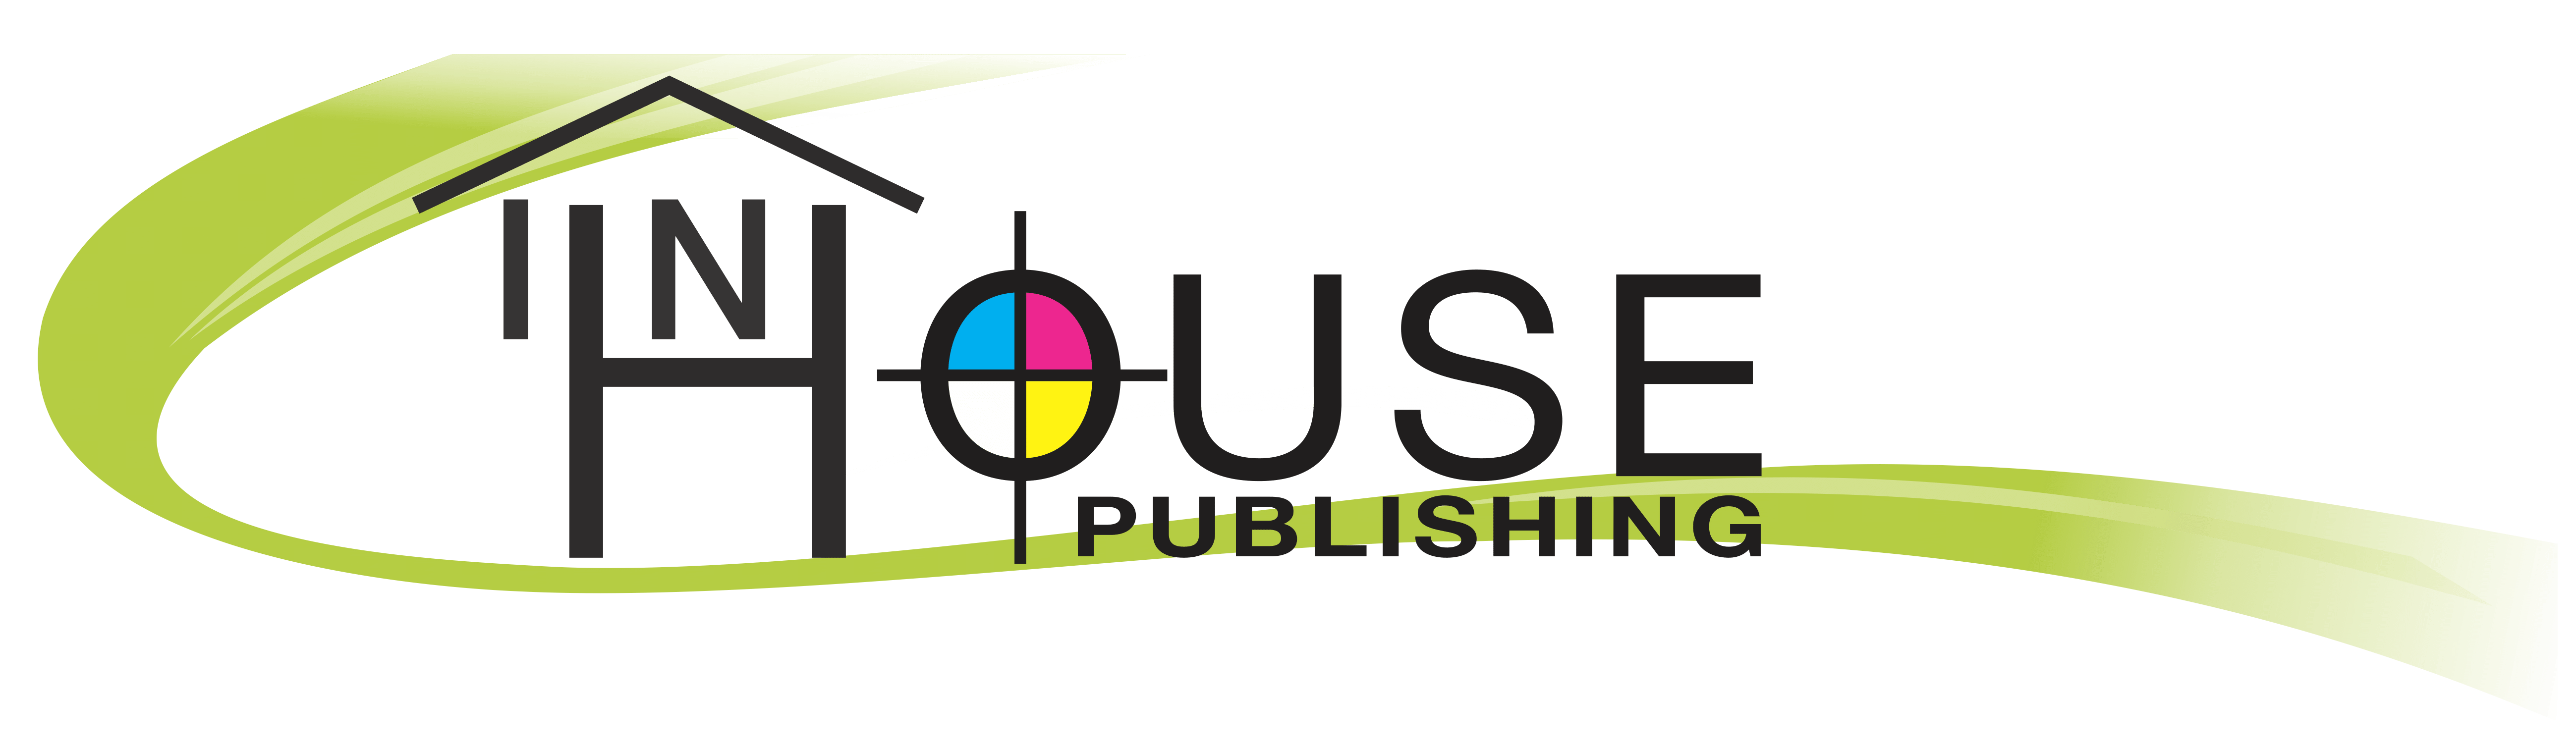 In House Publishing